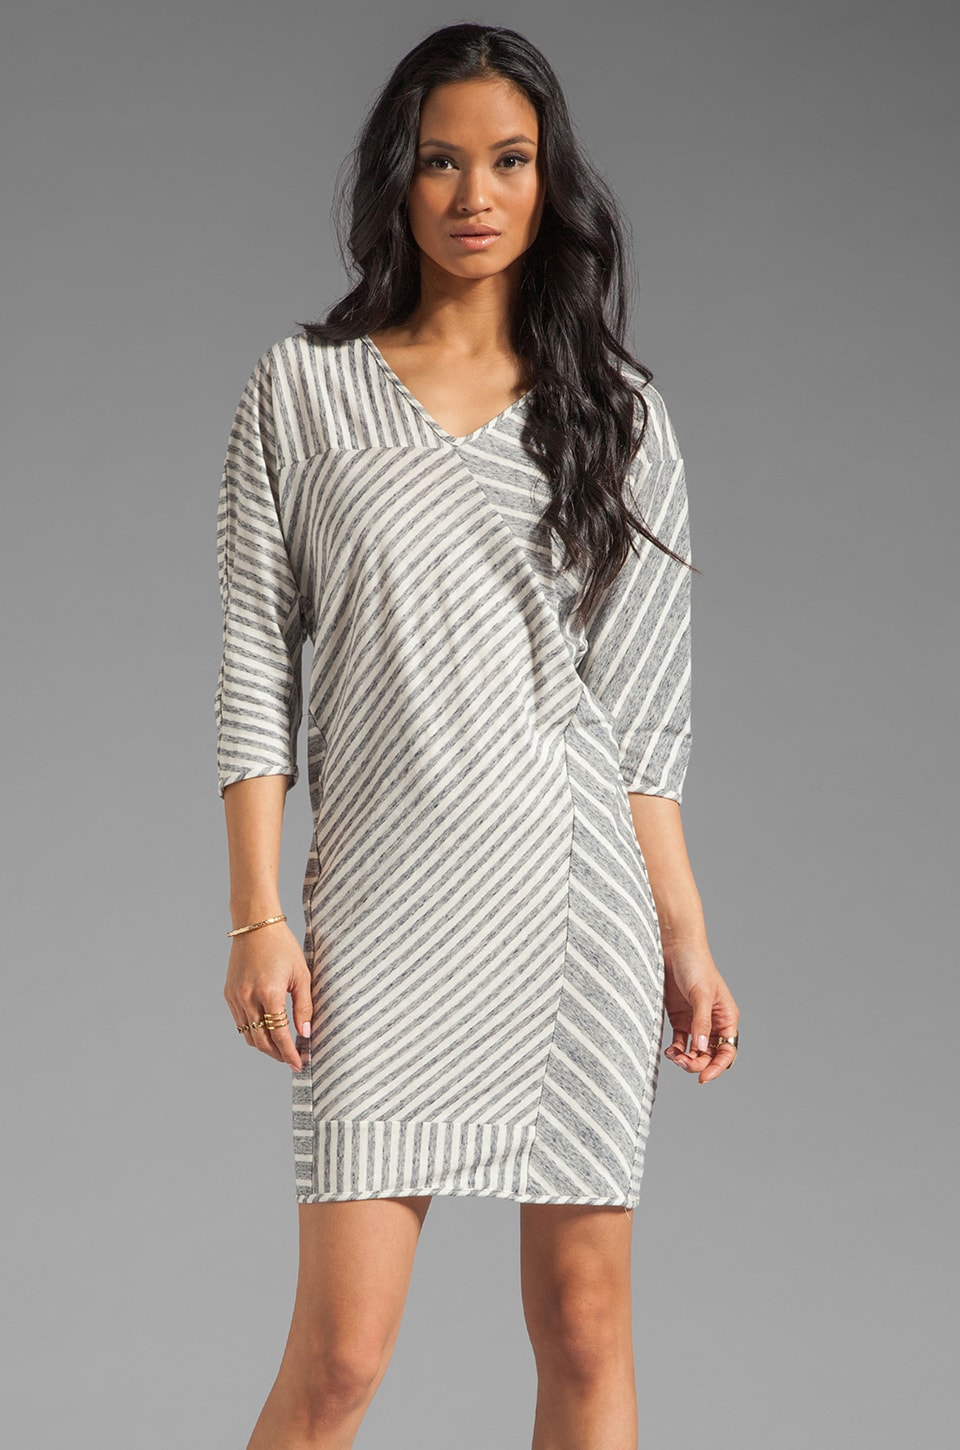 DEREK LAM 10 CROSBY Seamed Tee Shirt Dress in Grey Melange